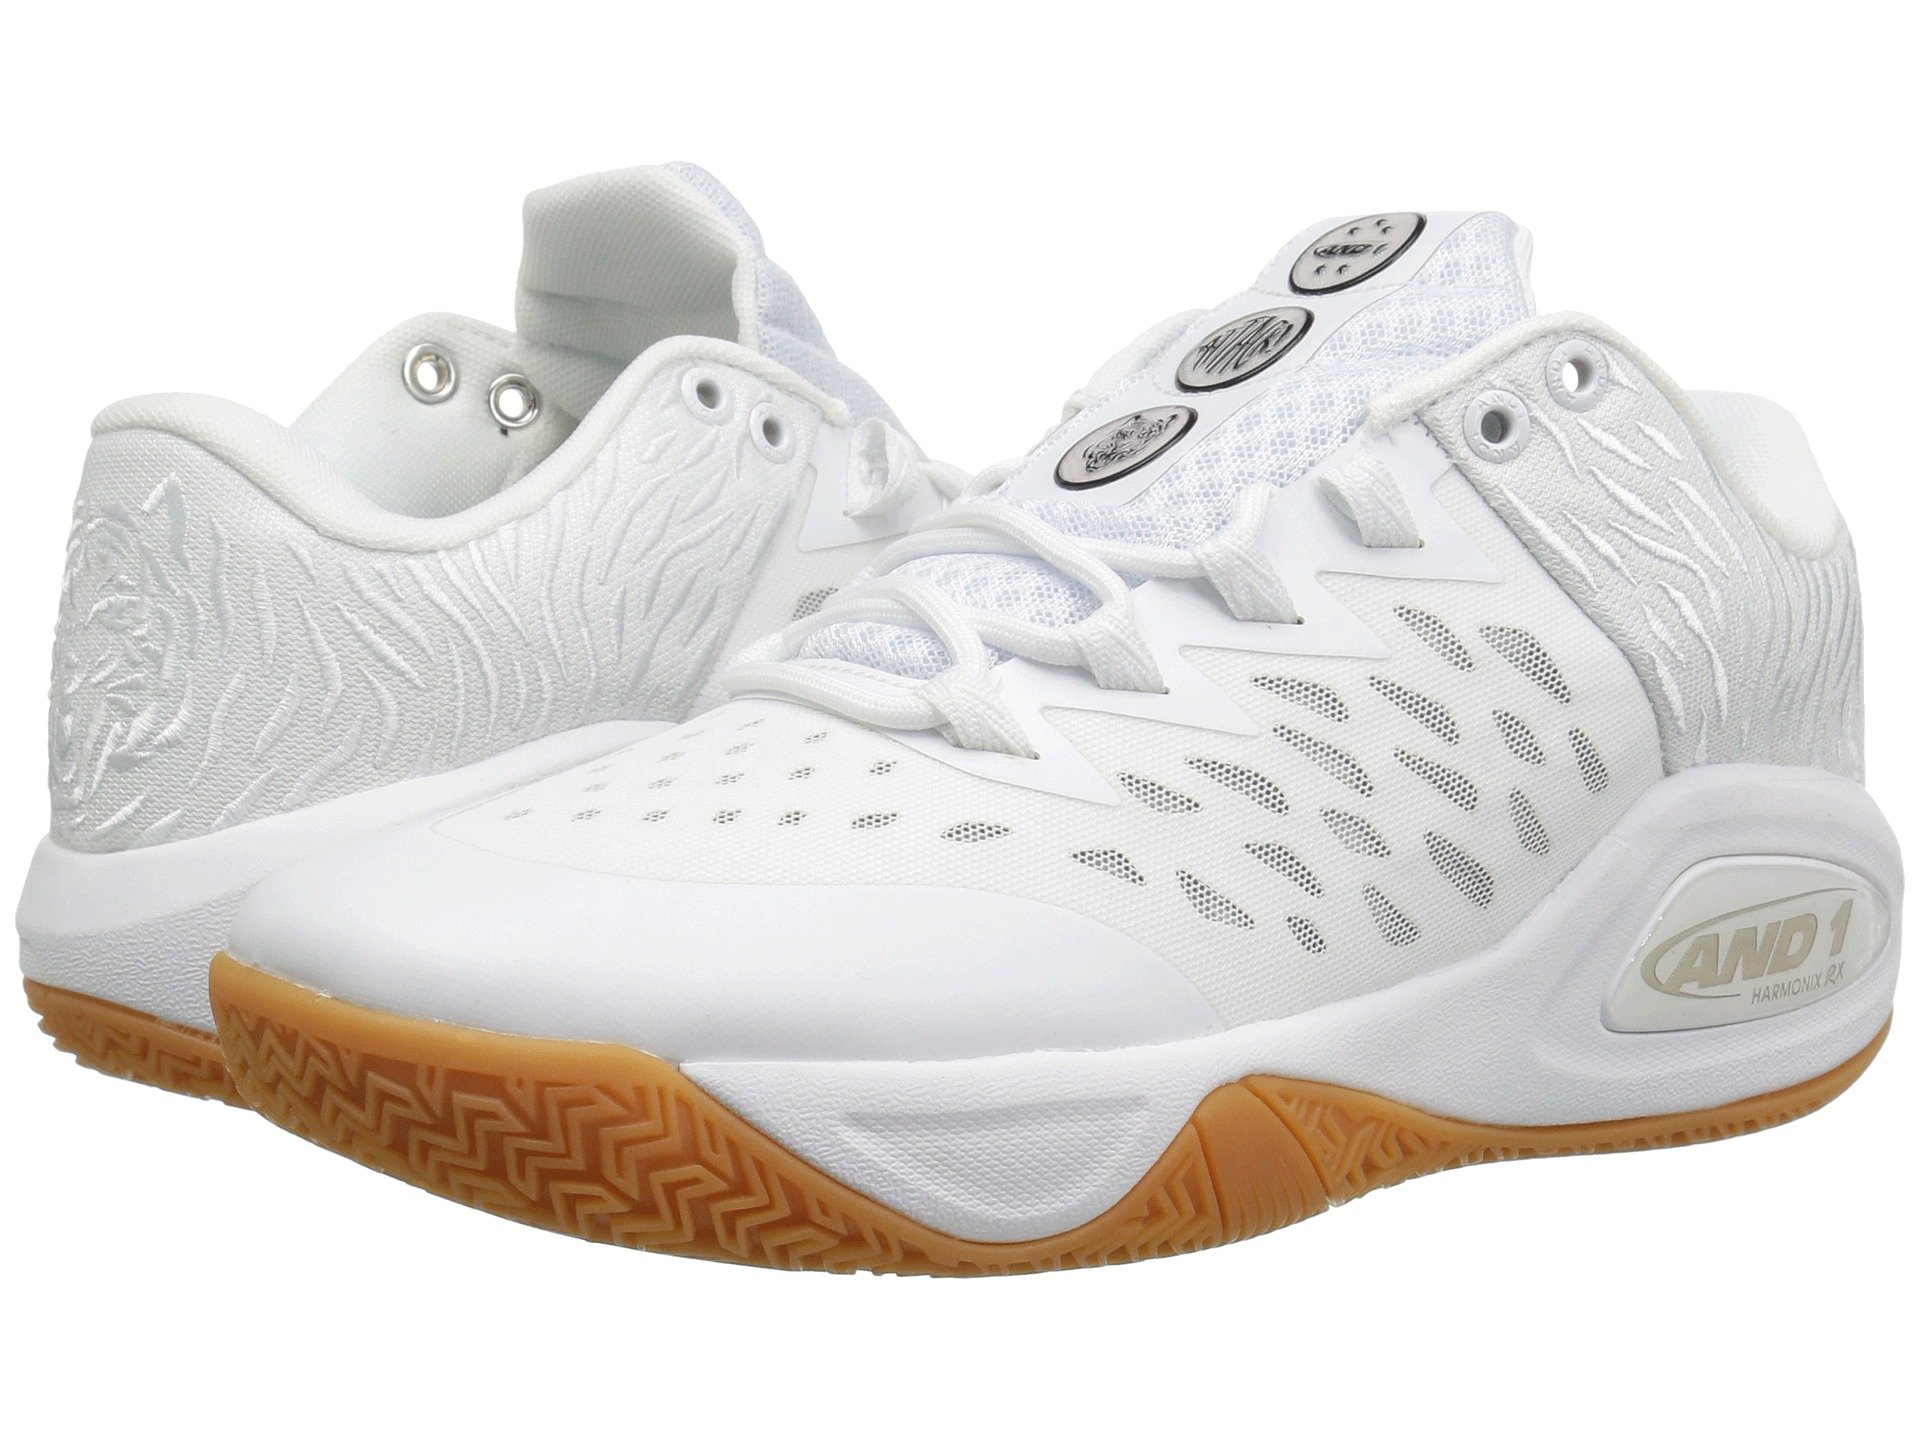 AND1 Men's Attack Low Basketball Shoe